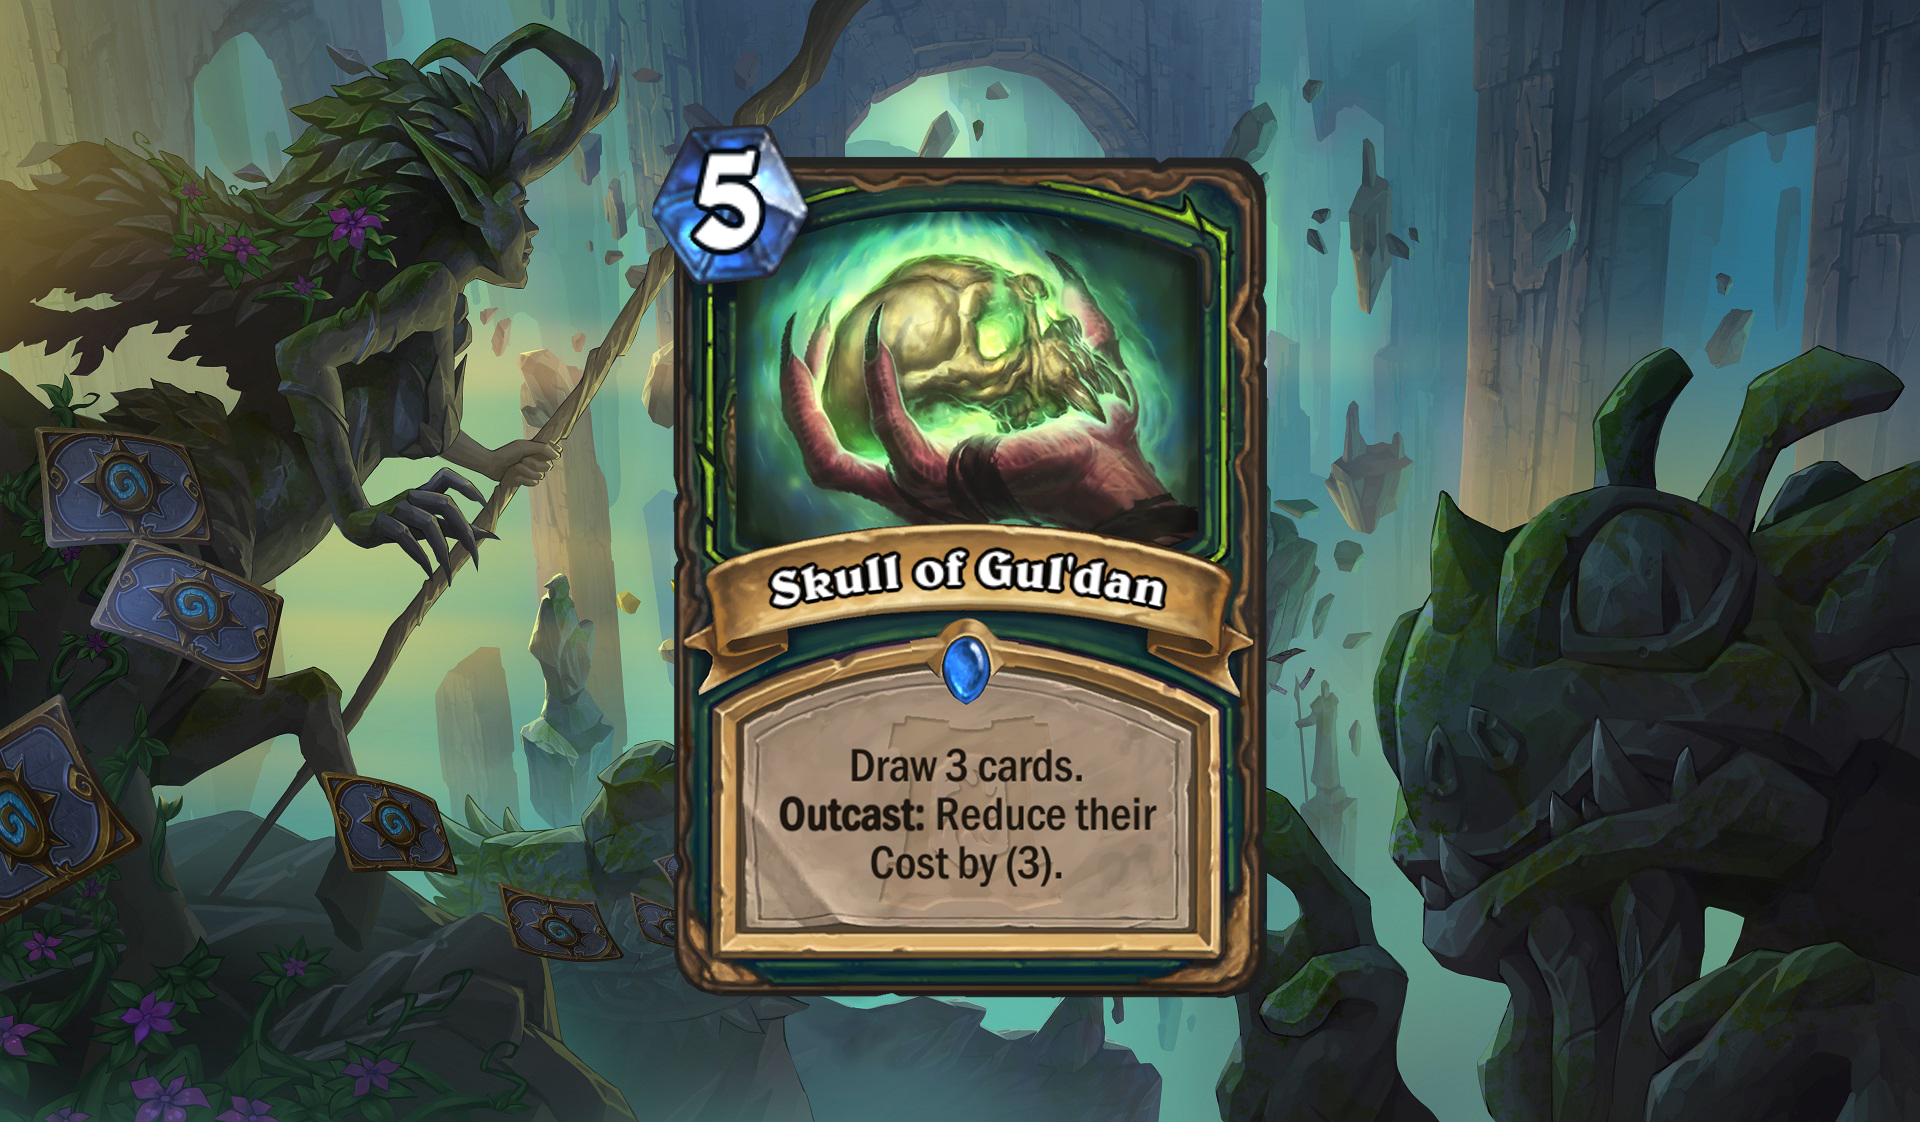 Hearthstone - Skull of Gul'dan